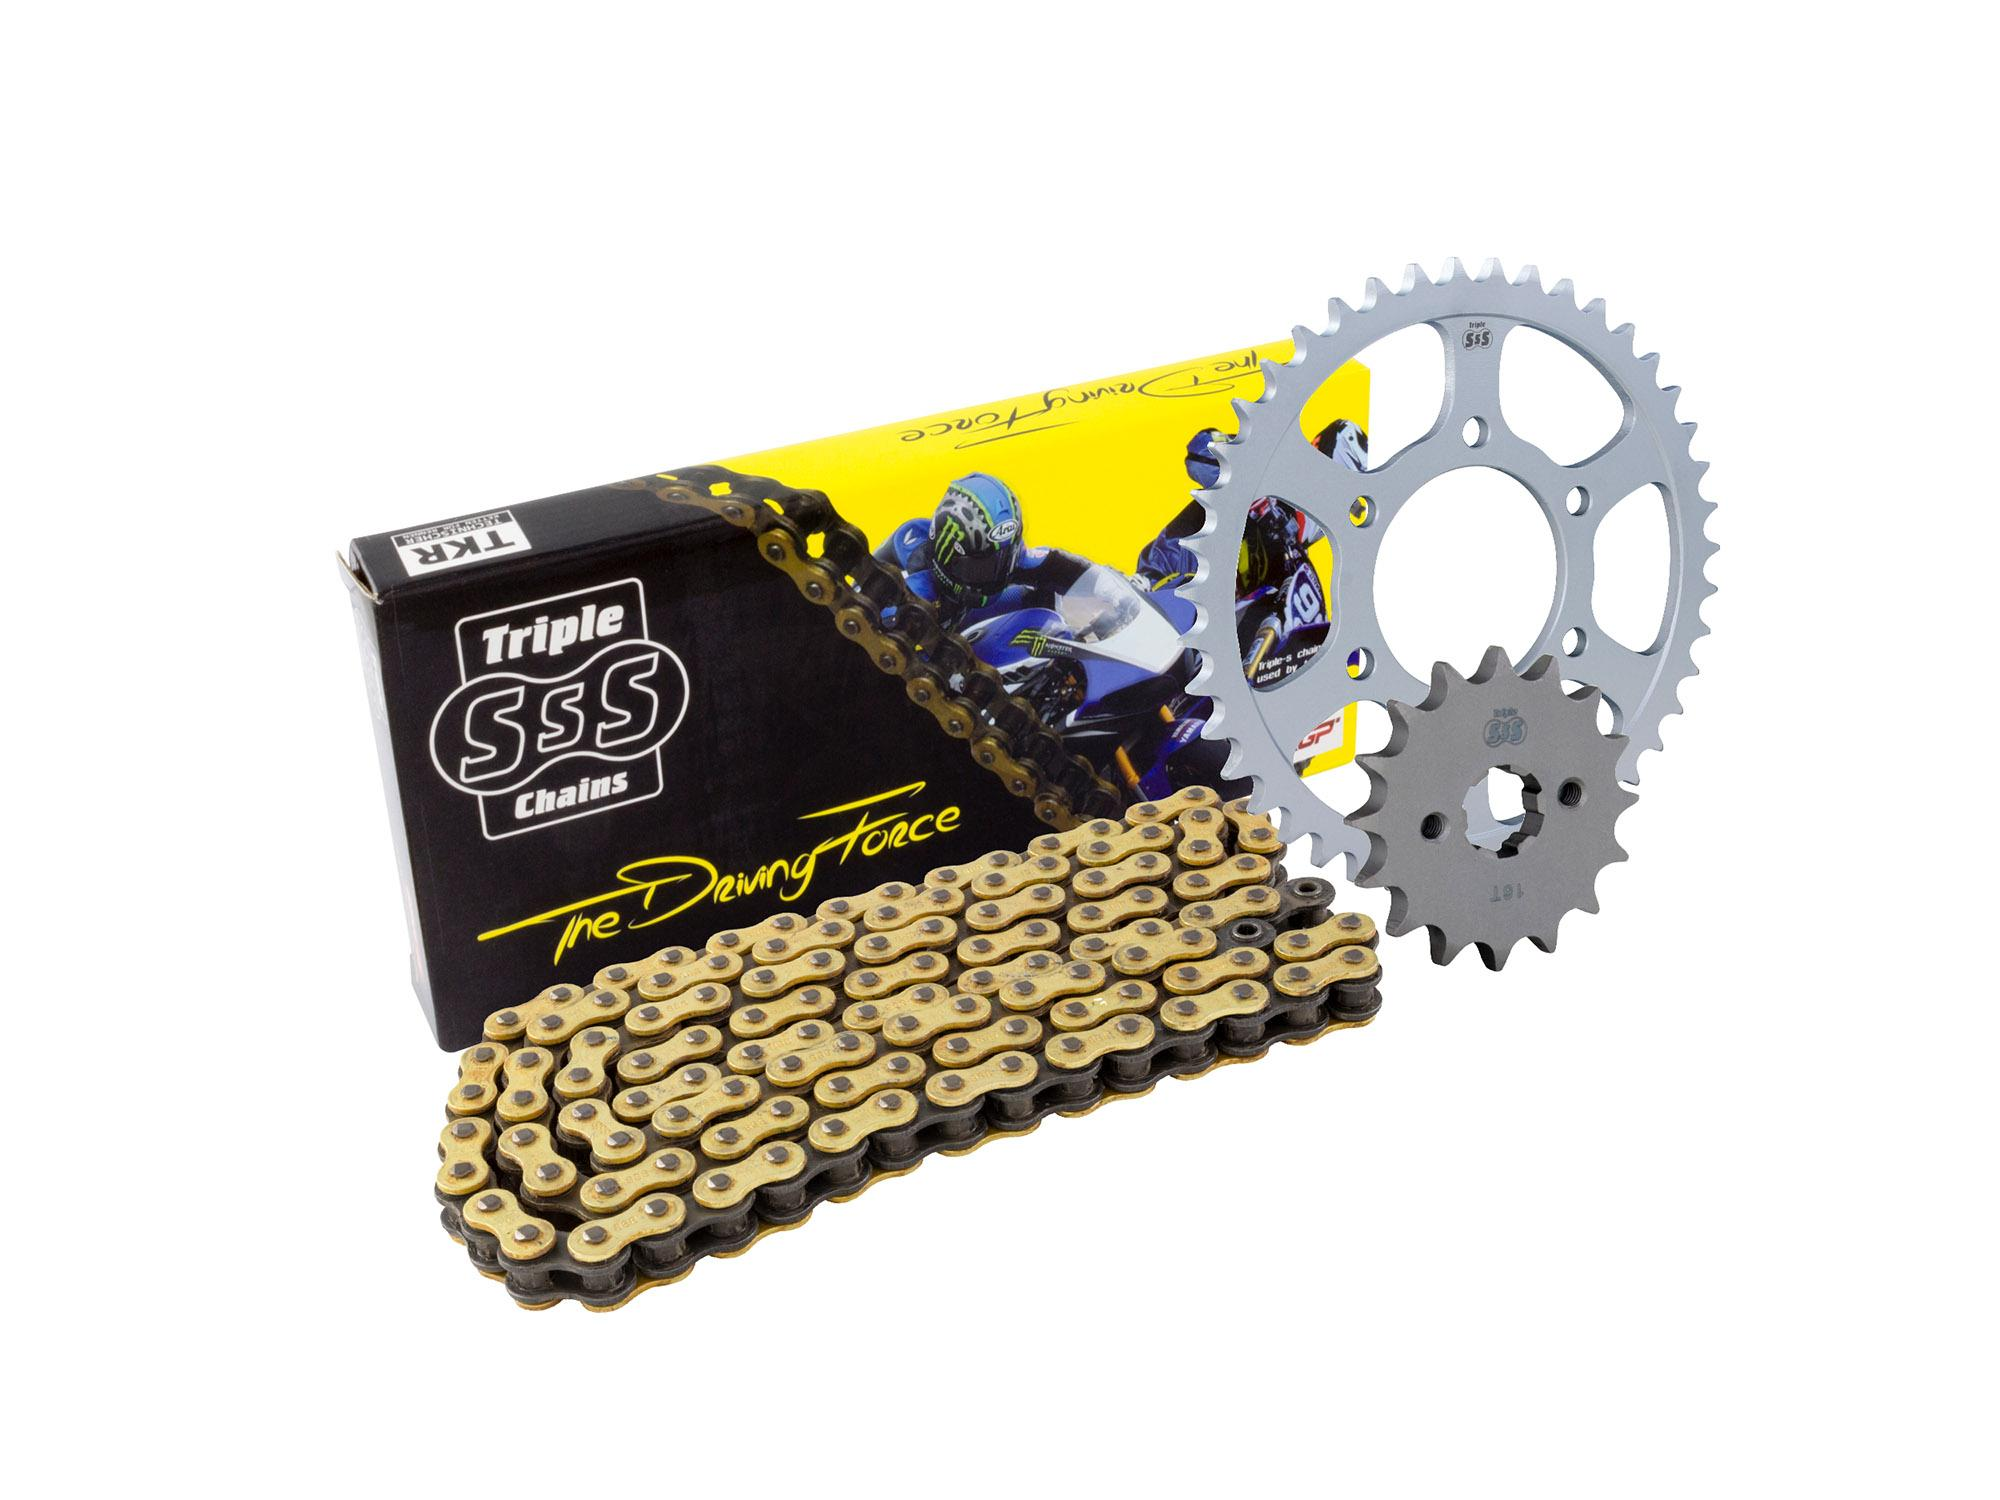 Yamaha YZF R-6 06-10 Chain & Sprocket Kit: 16T Front, 48T Rear, HD O-Ring Gold Chain 530H 114 Link